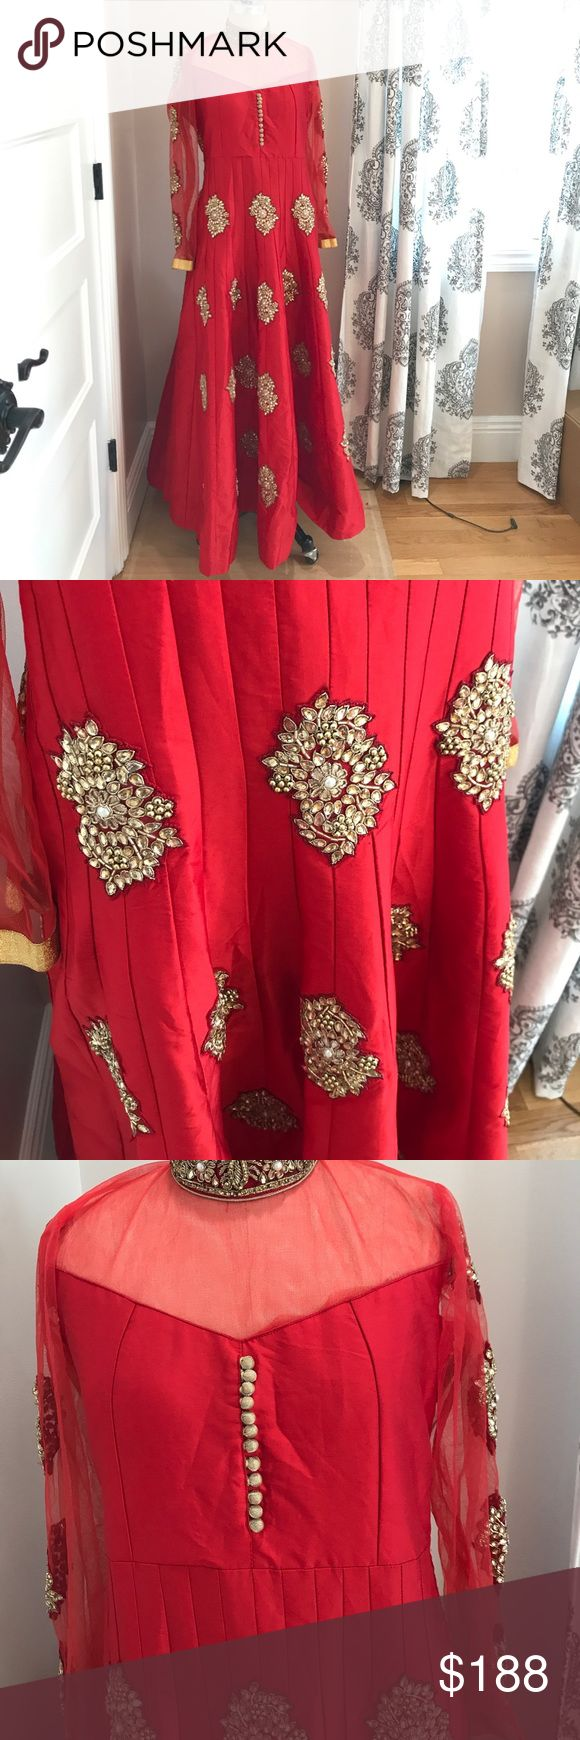 PRICE FIRM Indian/ Pakistani Anarkali Shalwar Suit Bought this piece for my sister from India & she gave me the wrong size; so her loss is your gain! Price is firm to cover the price I paid. You won't find a better deal for this quality anywhere around the U.S (go ahead & try). This beautiful Anarkali Sari Dress Suit has never been worn and perfect for all Indian/ Pakistani functions. Comes with top quality stone work and appliqués all around the bodice, sleeves, sides and neck to create a…